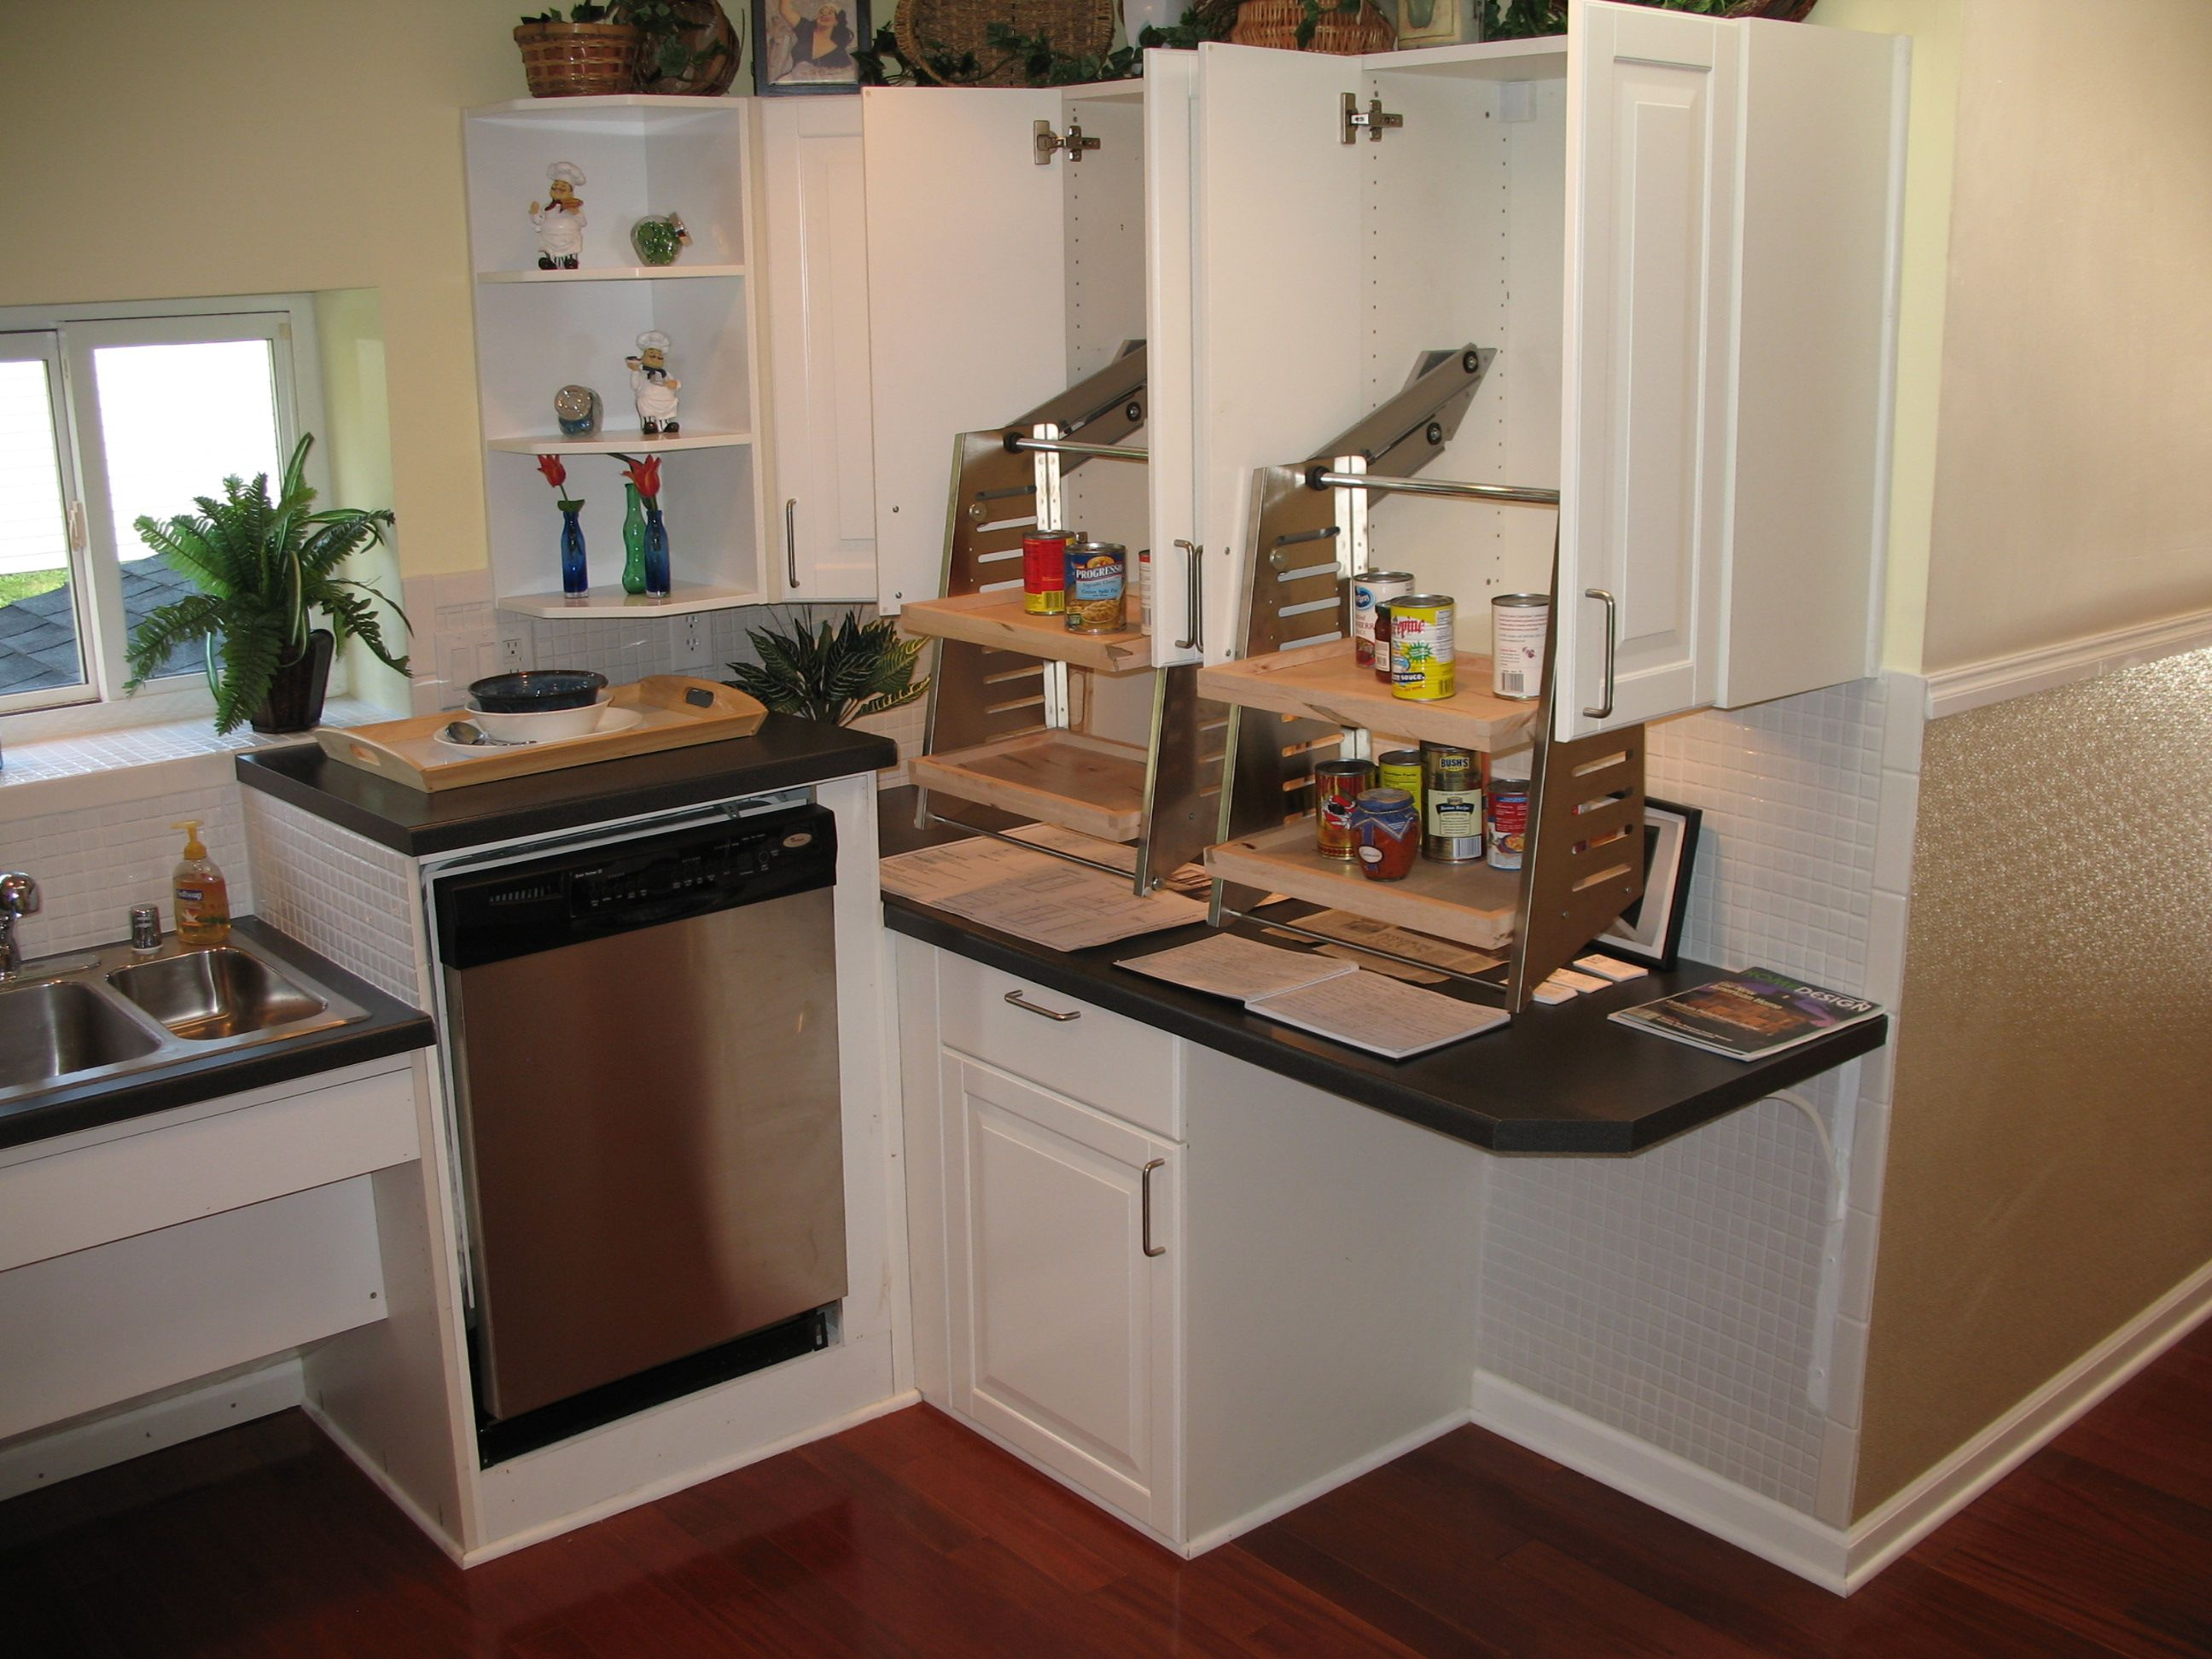 Universal Design Kitchen | Universal Design Features In A House | Accessible  Rentals